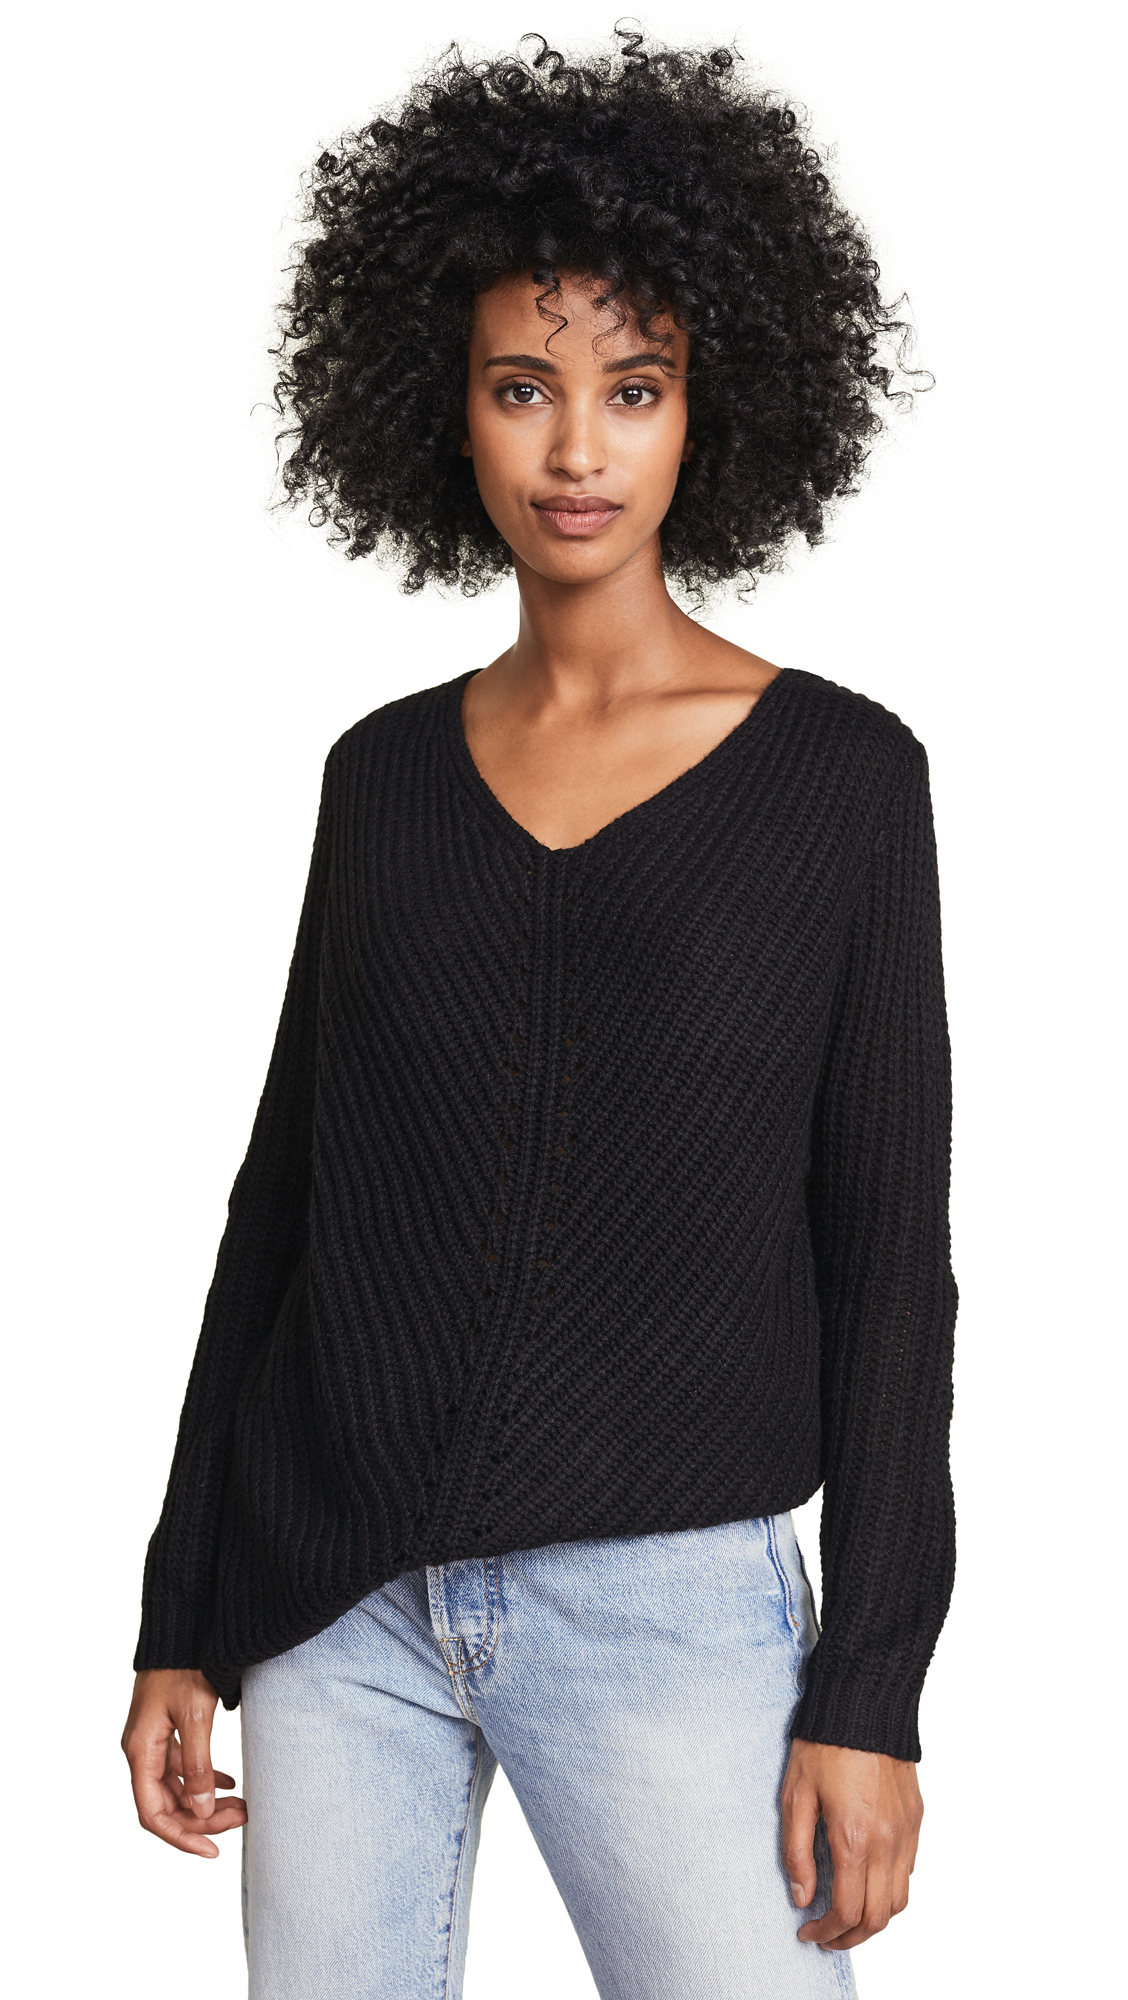 BB Dakota Bedroom Dancing Lace Up Sweater In Black